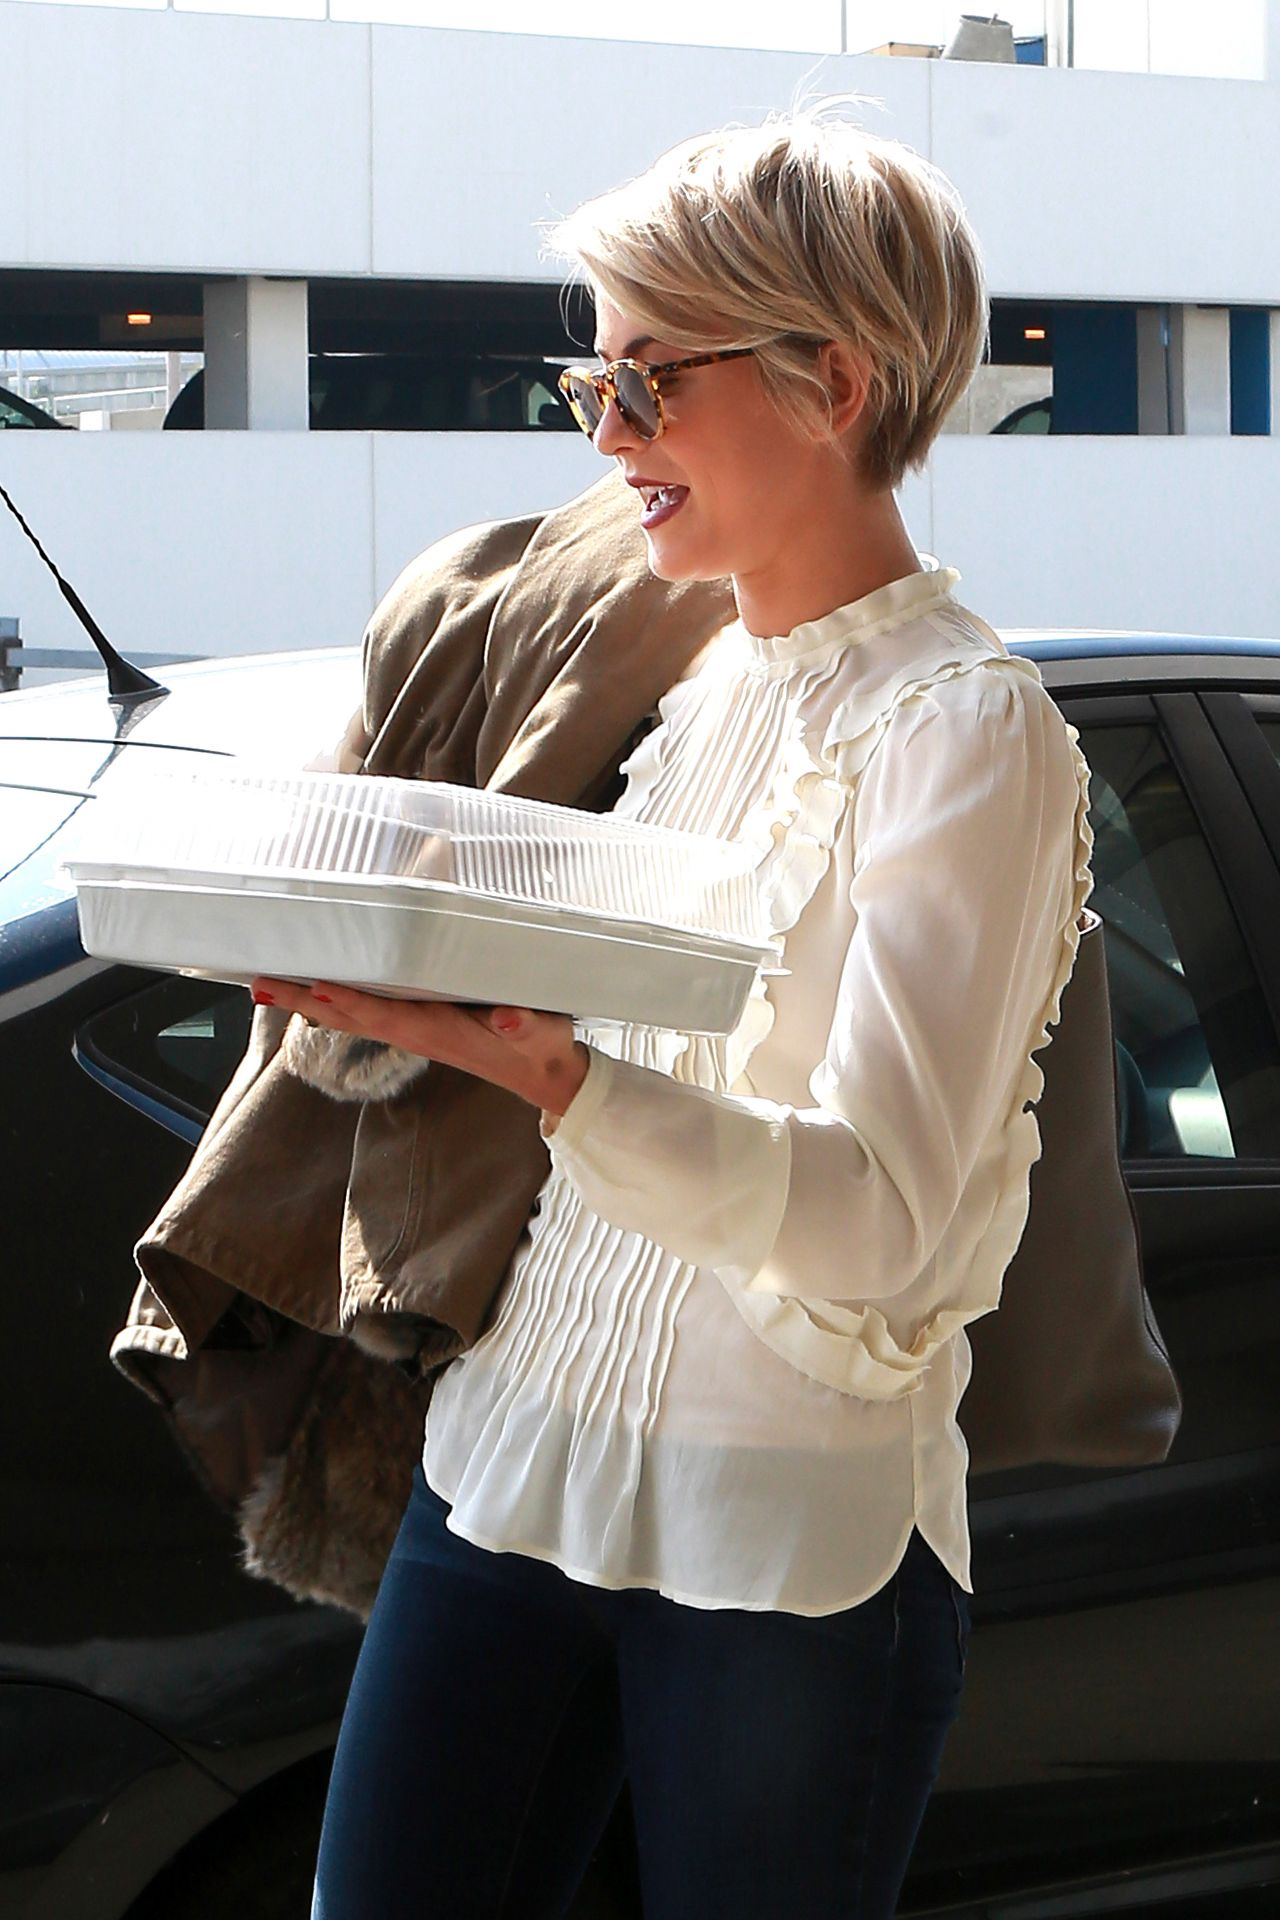 Julianne Hough Sports New Shorter Hair - February 2014